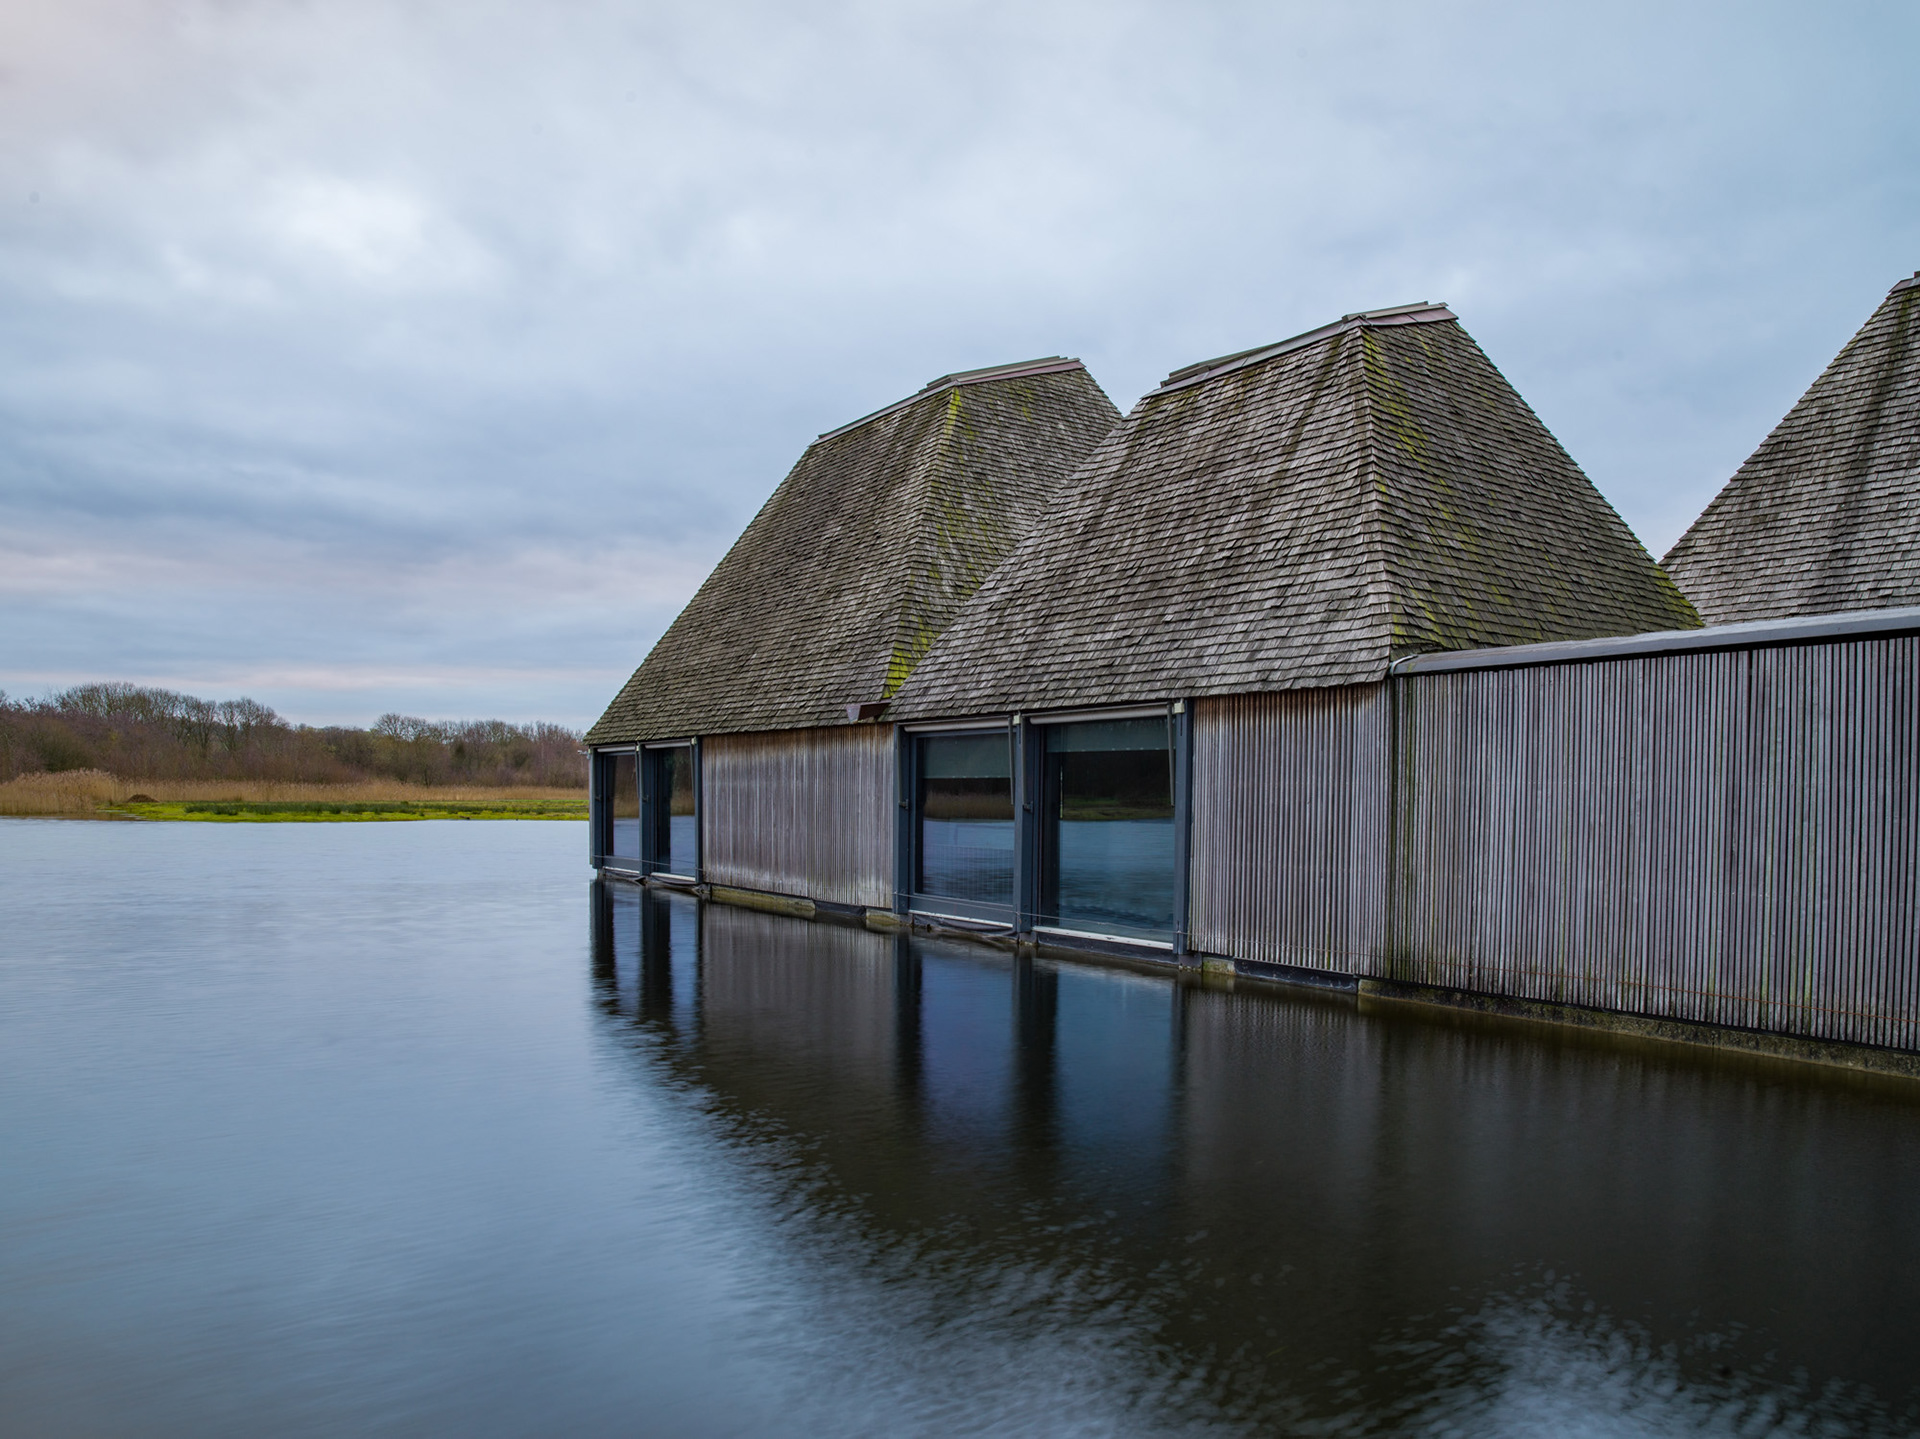 Architectural Photography by Martyn Hicks Photography